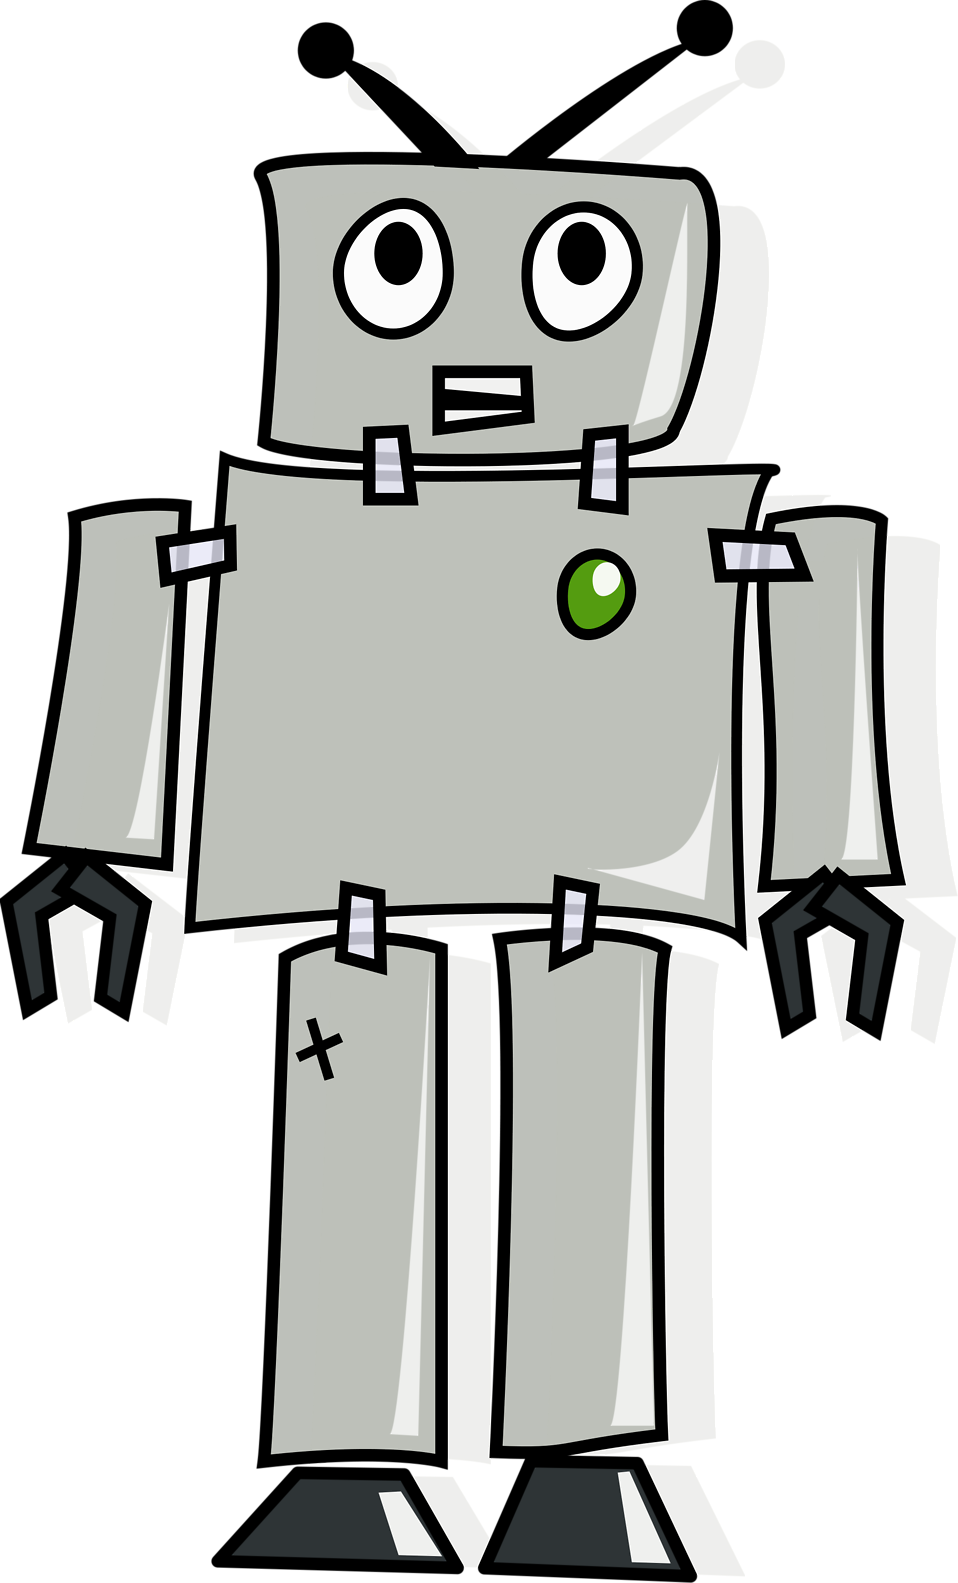 Robot free stock photo. Race clipart school competition